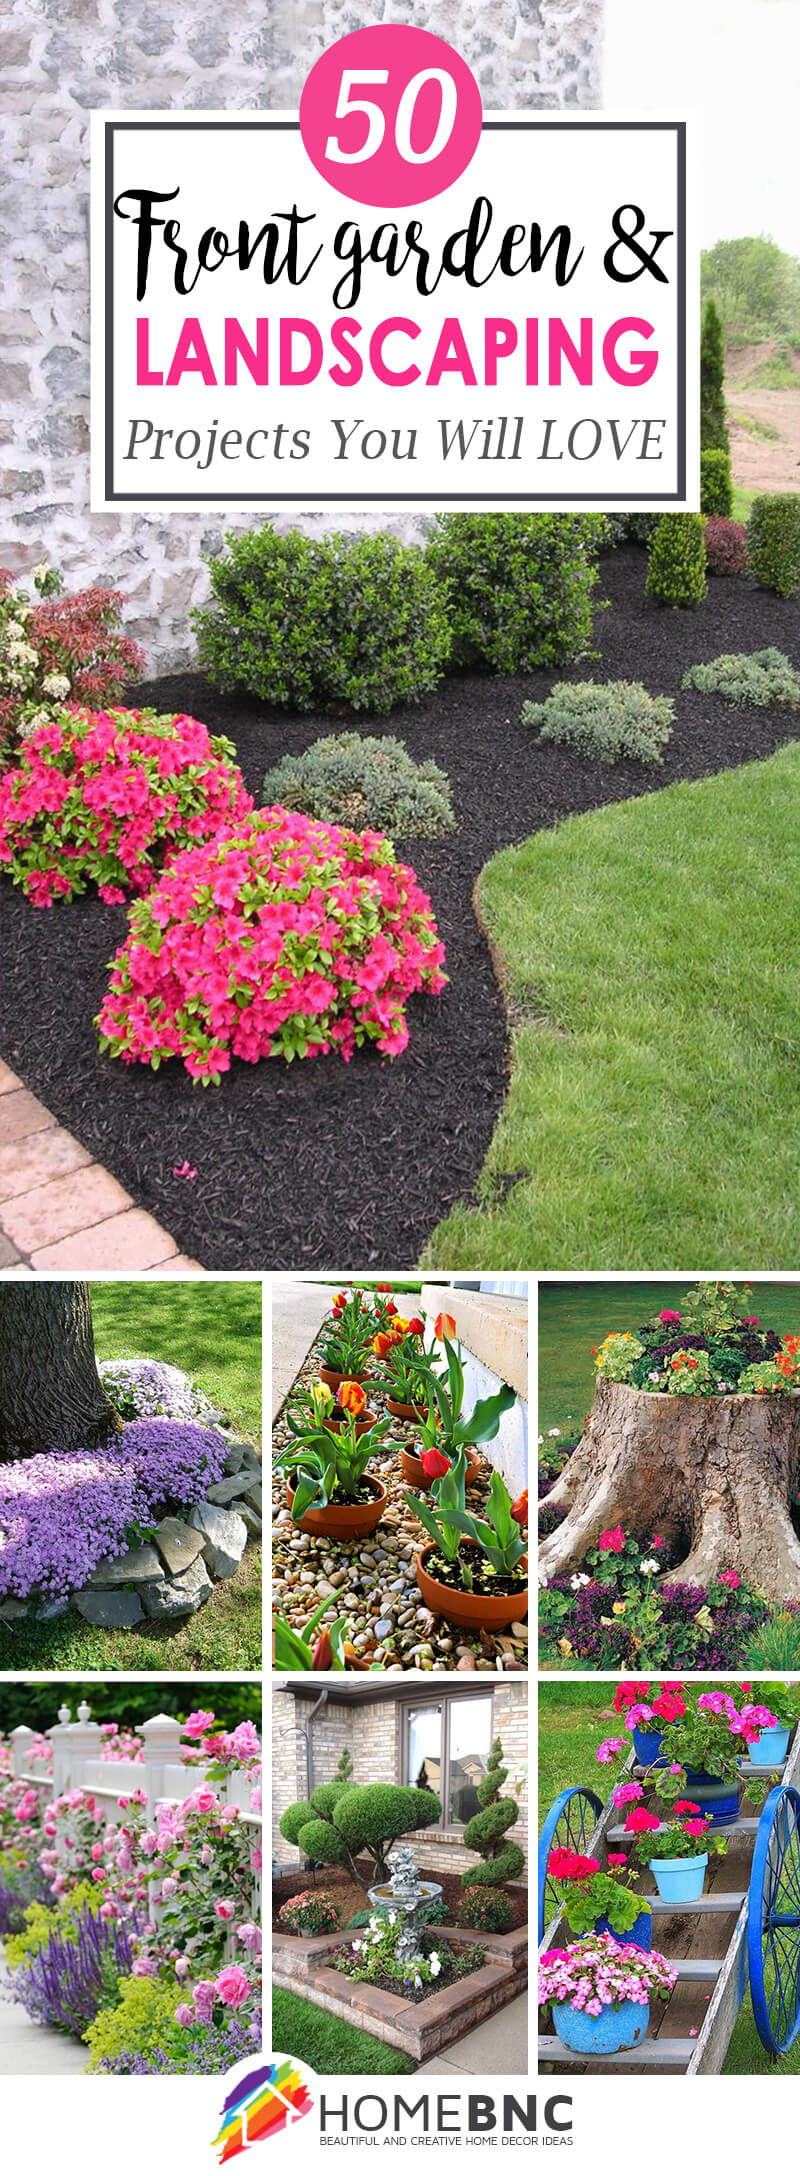 10 Lovely Flower Beds Ideas Front Yard 50 best front yard landscaping ideas and garden designs for 2019 1